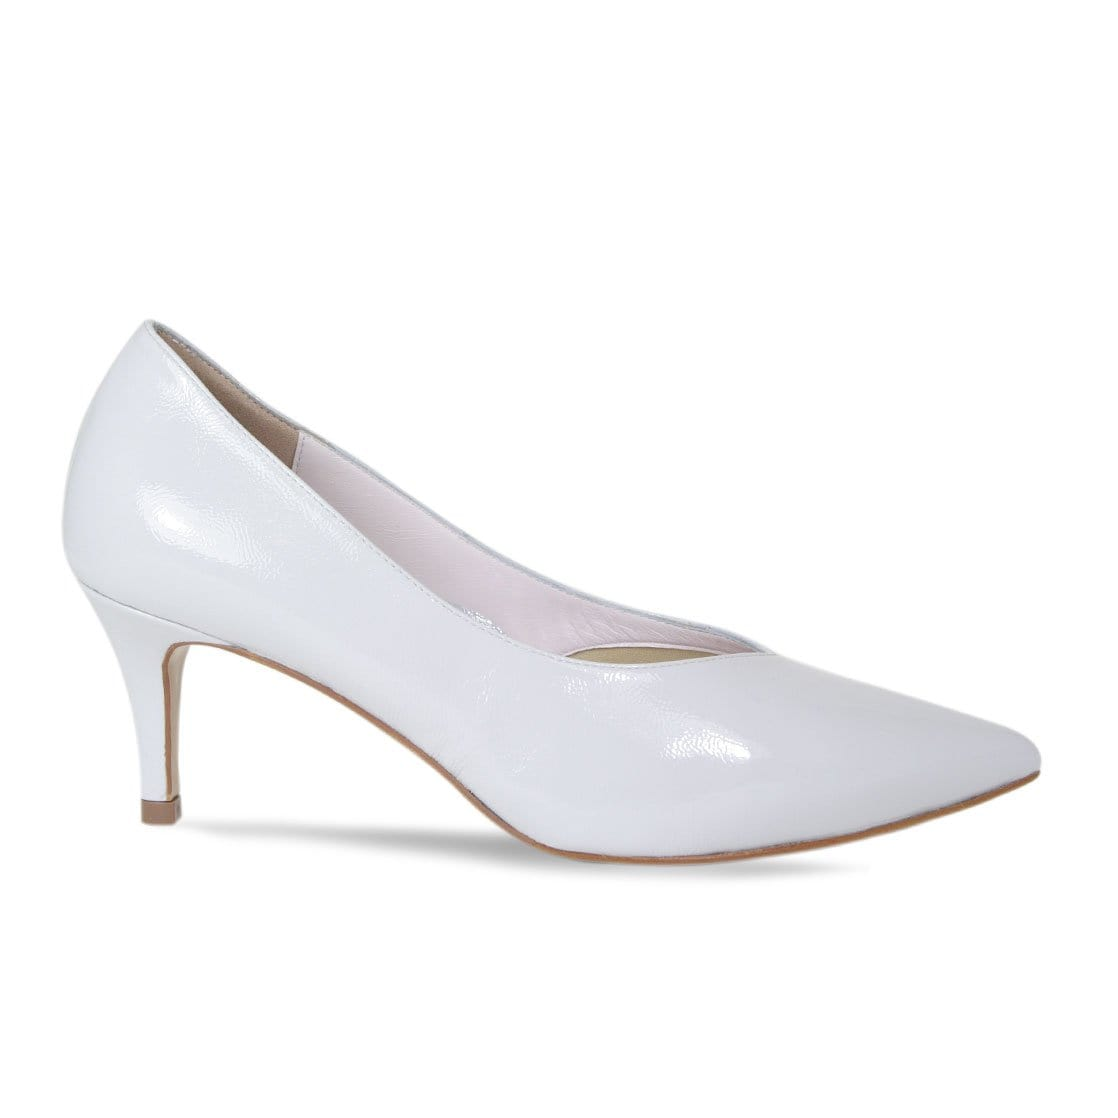 Pale Gray Patent Mid-Heel Pumps